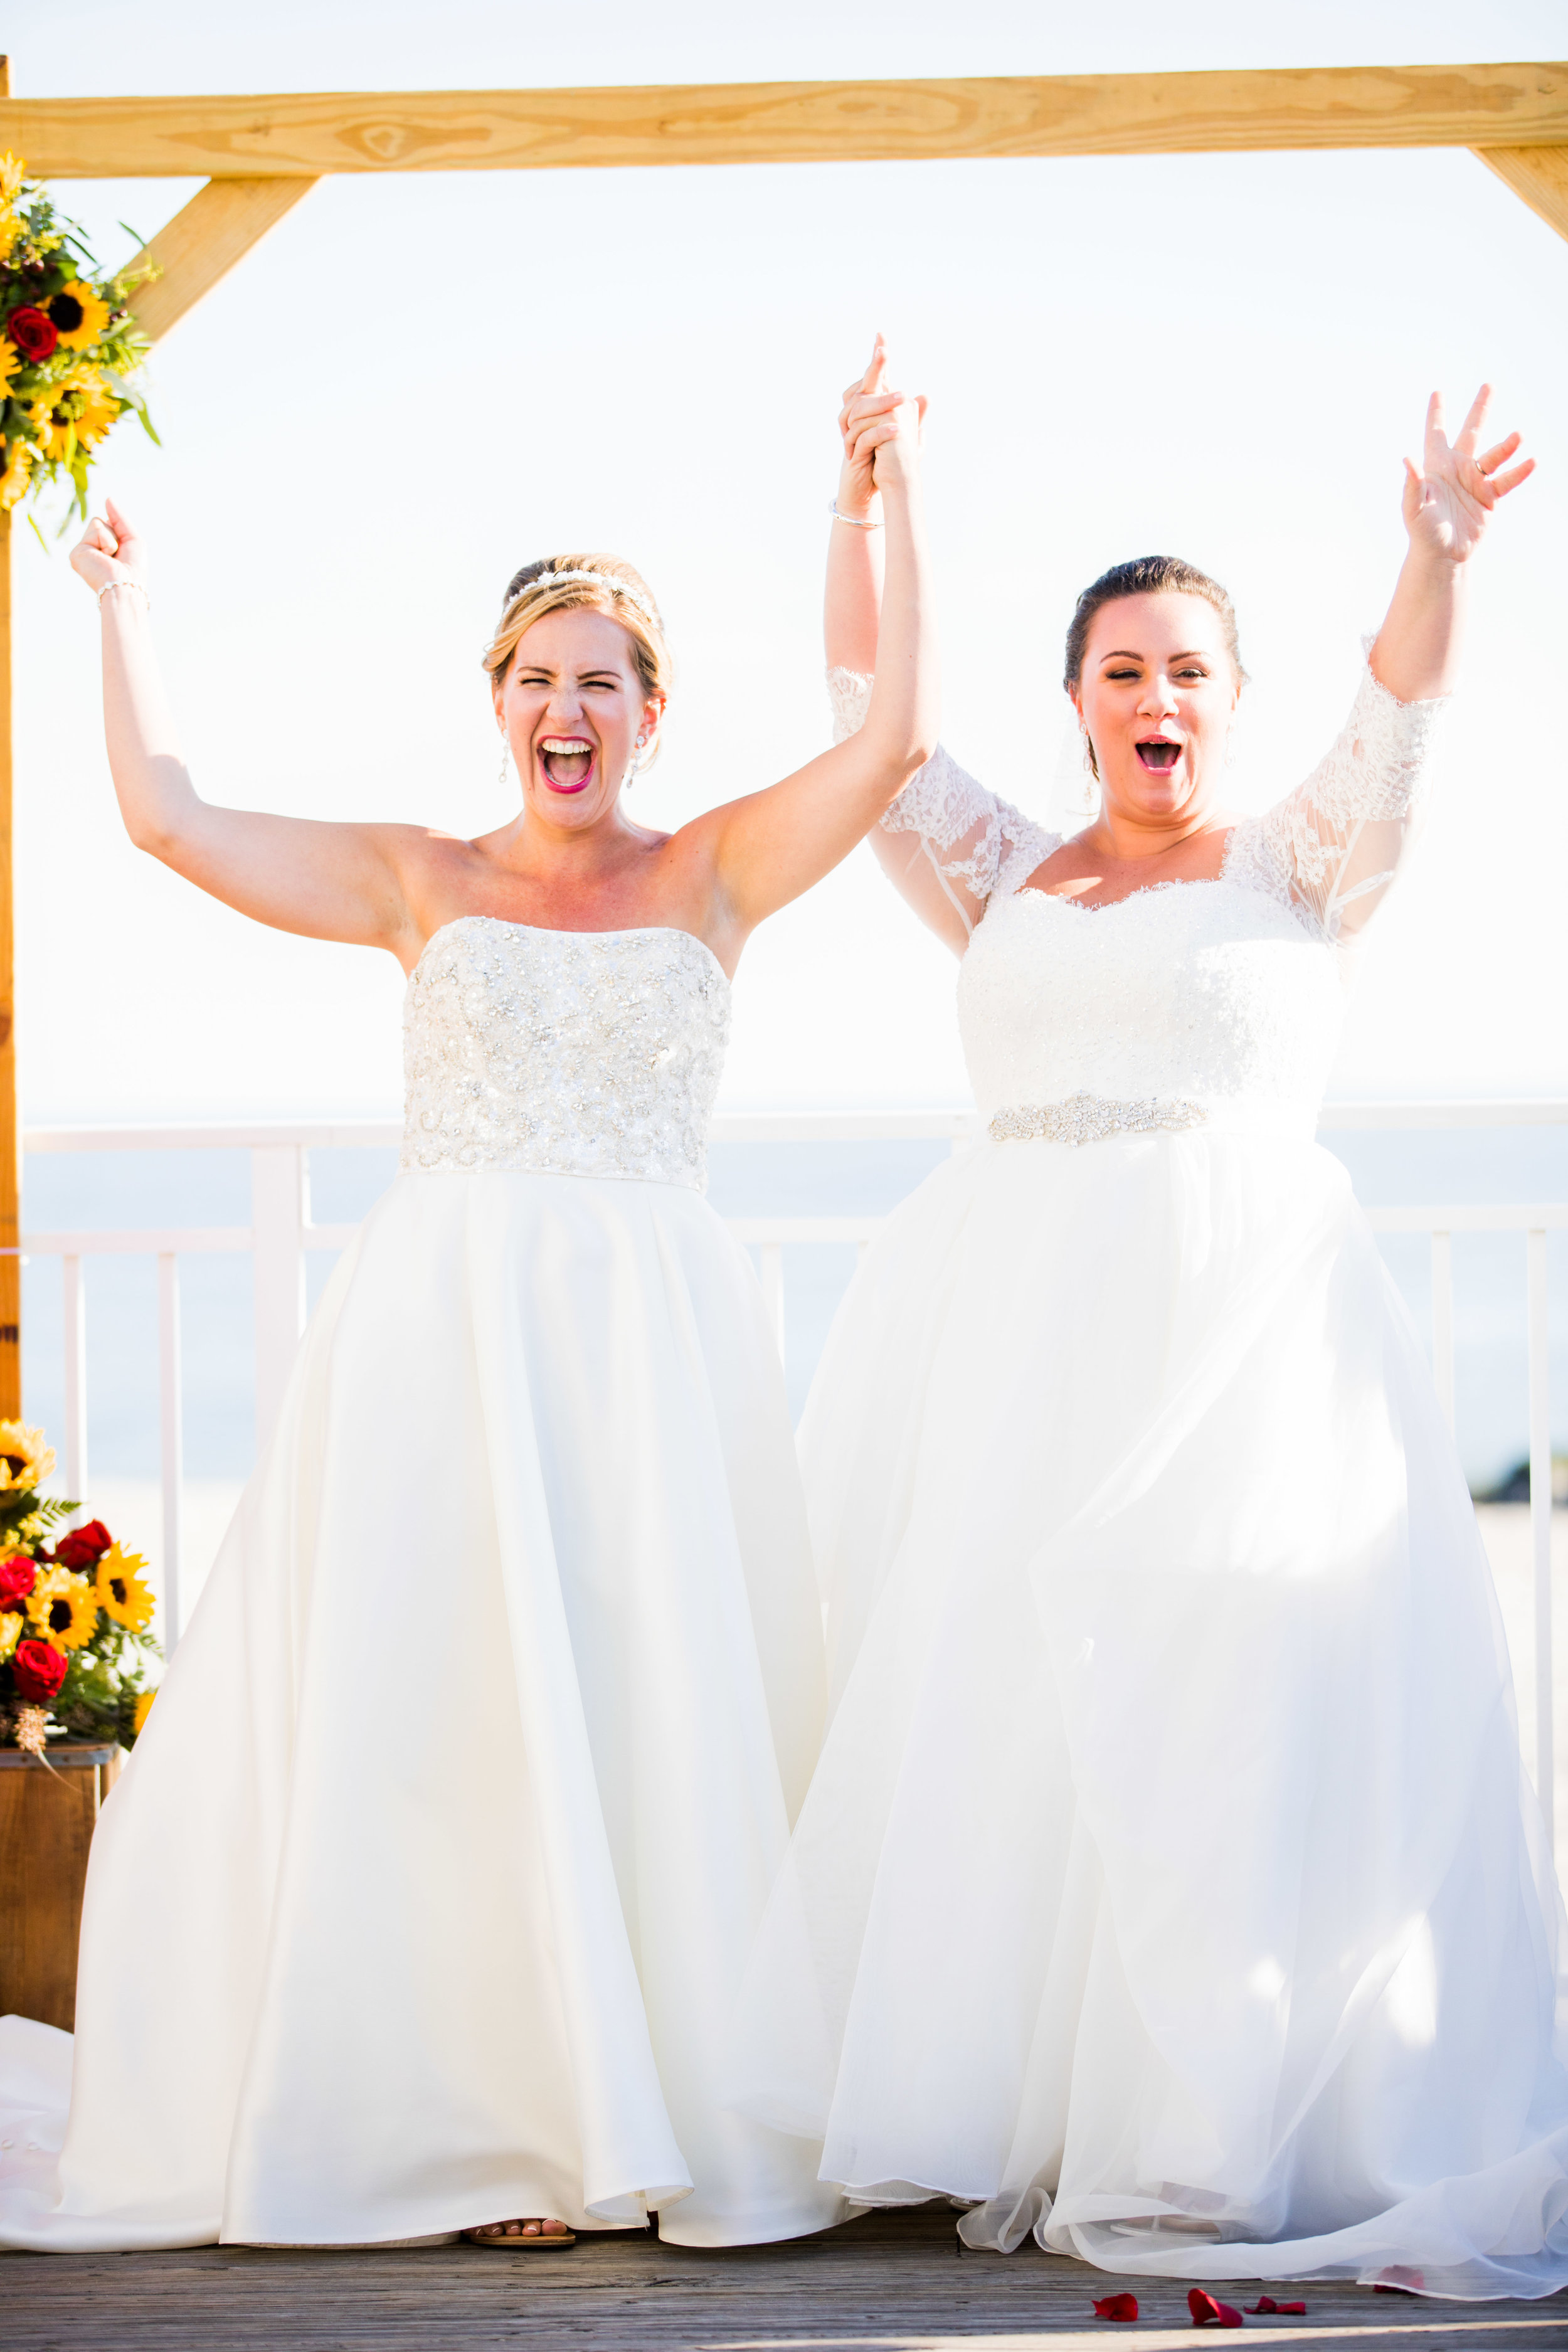 Kim and Dominique  - Cape May Convention Hall Wedding - 118.jpg